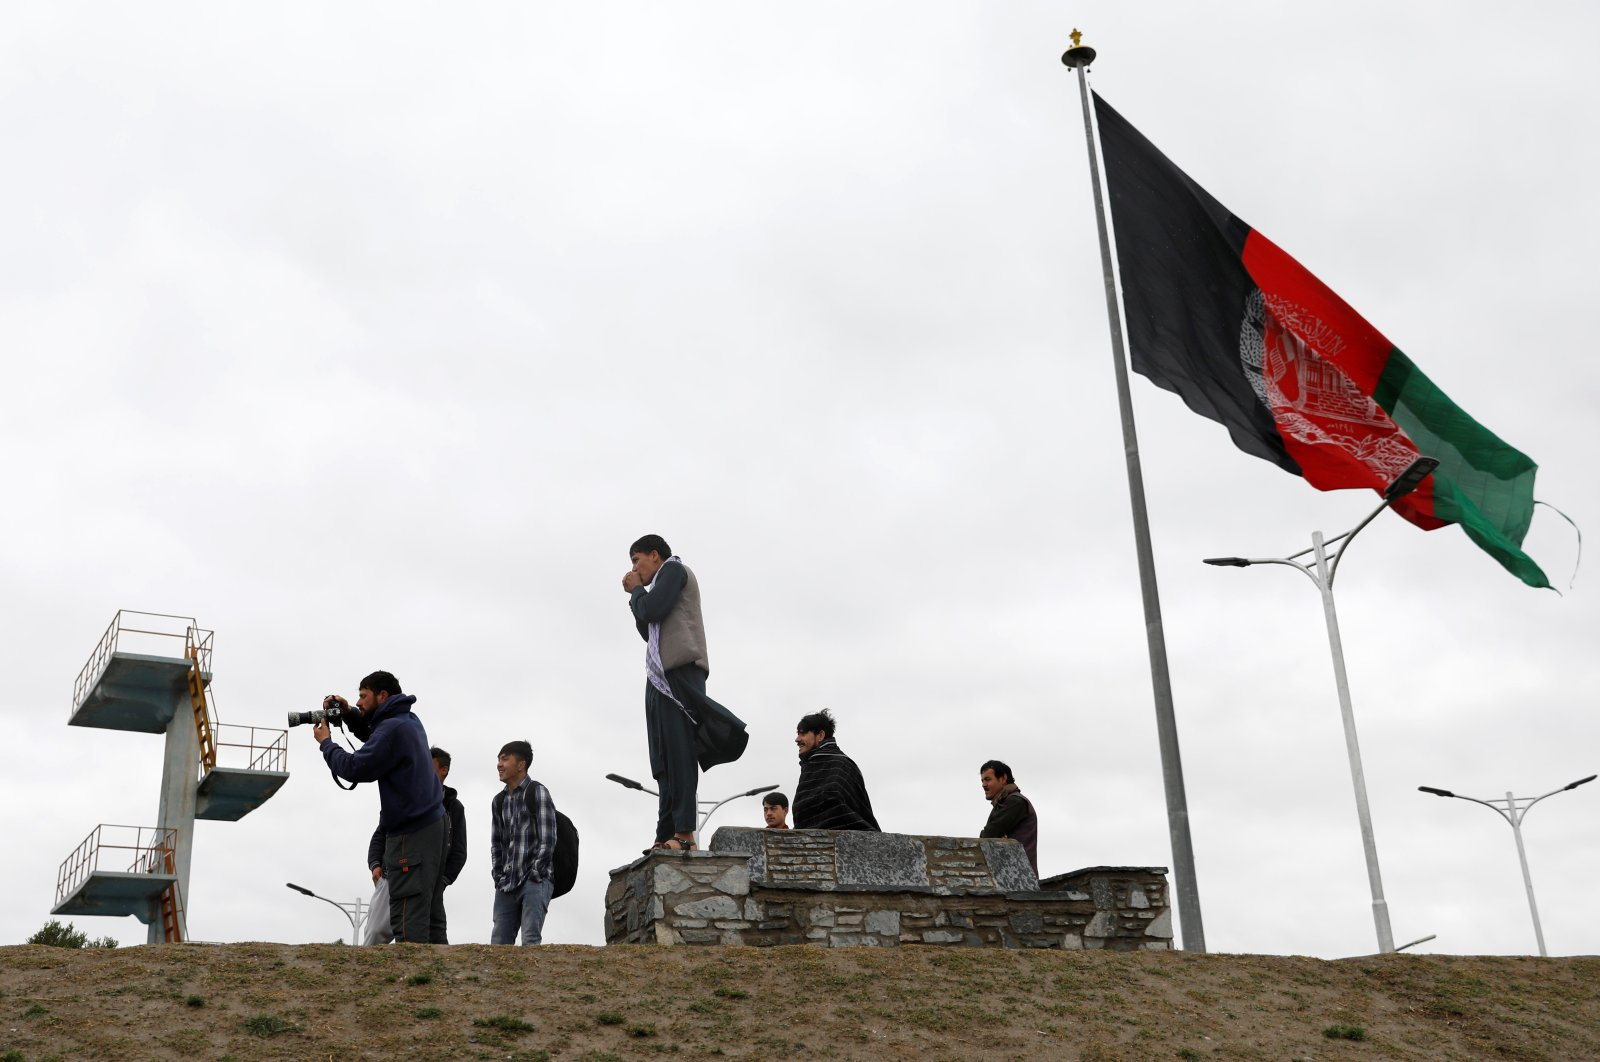 Youths take pictures next to an Afghan flag on a hilltop overlooking Kabul, Afghanistan, April 15, 2021. (REUTERS Photo)